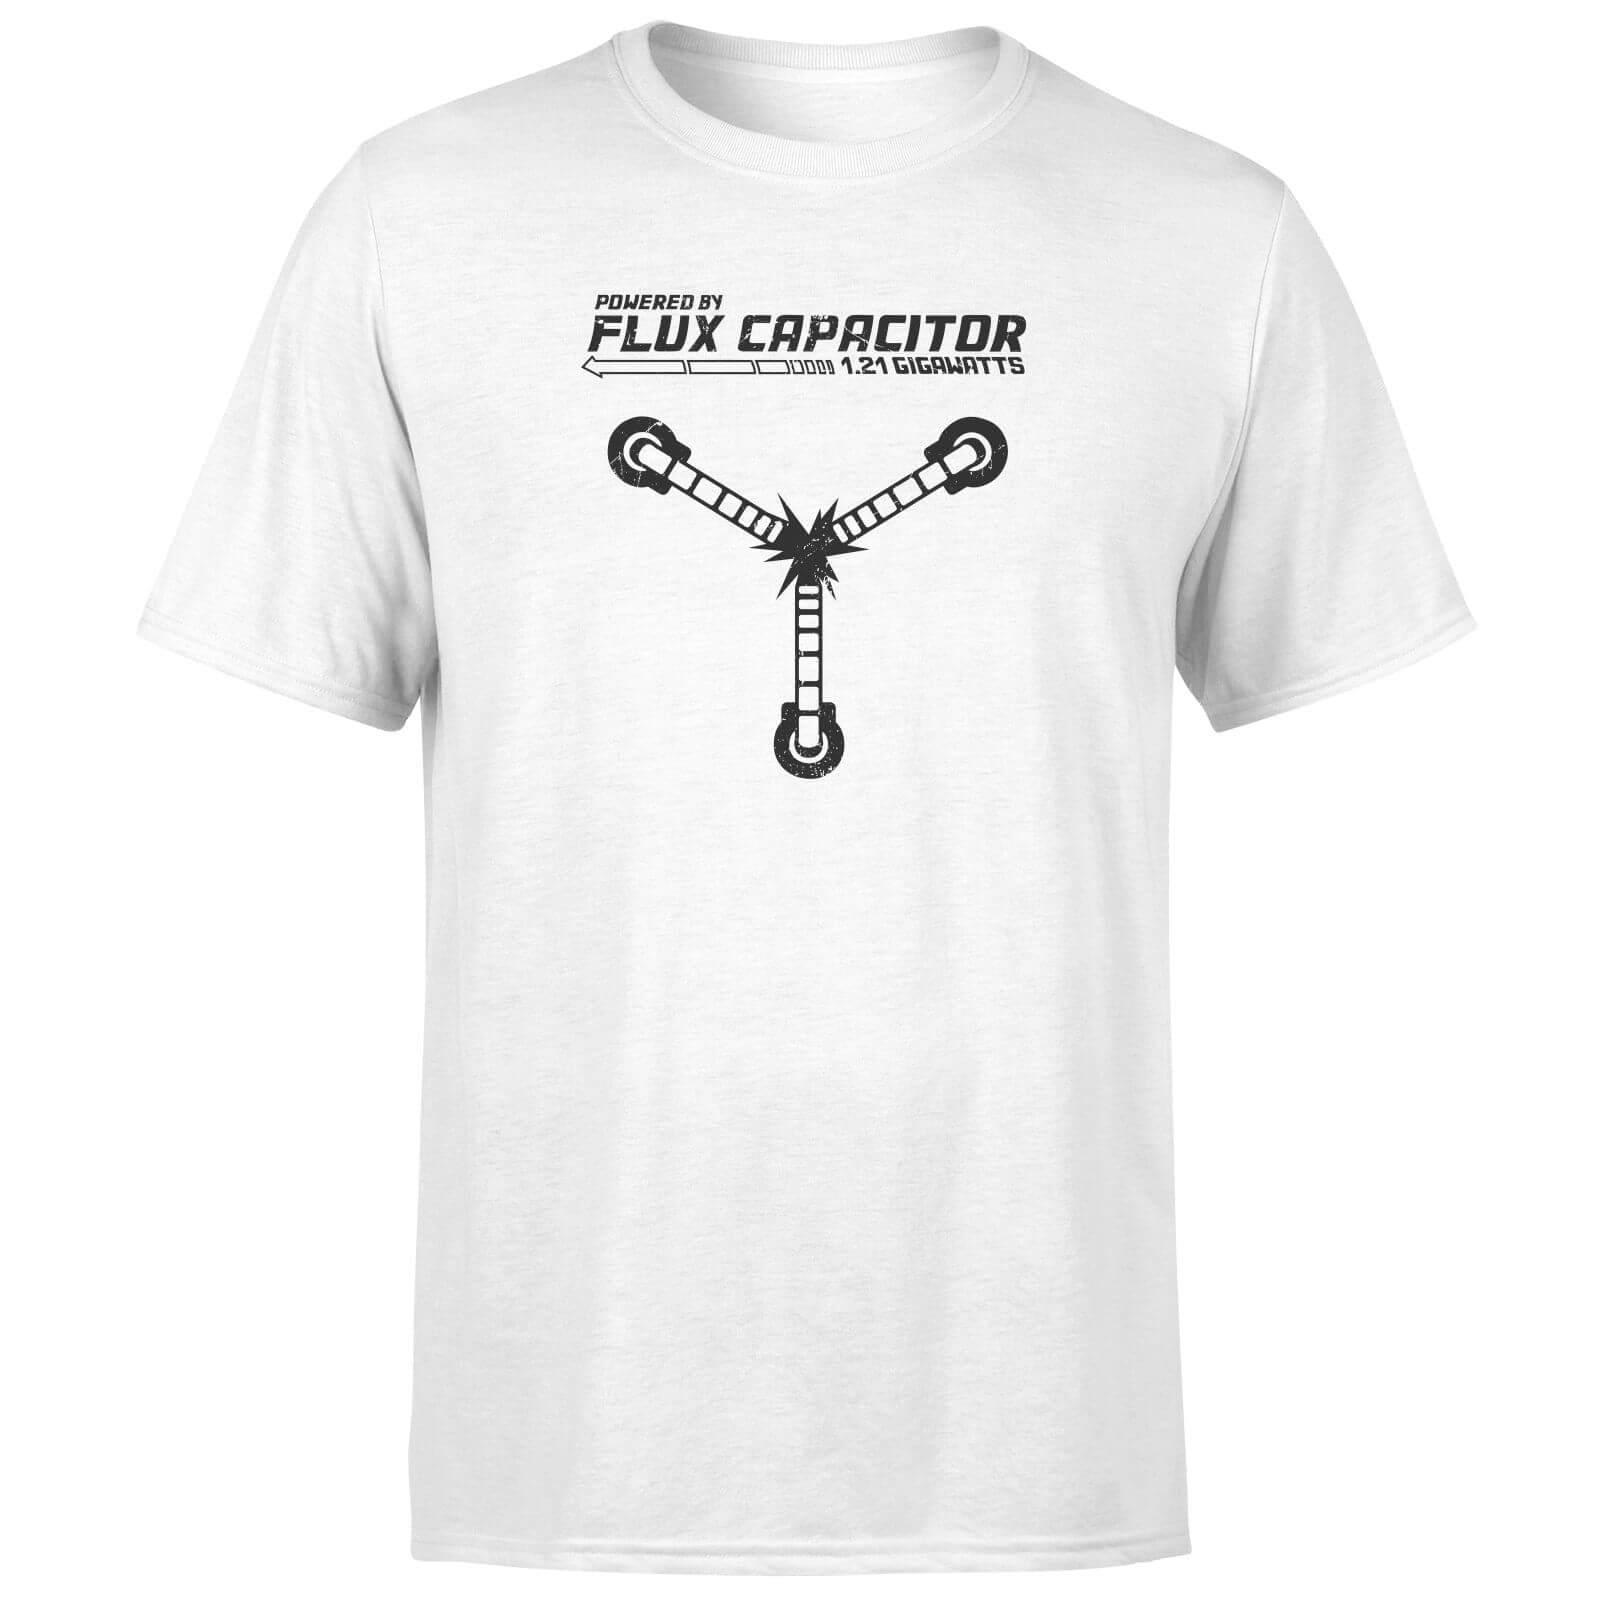 Back To The Future Powered By Flux Capacitor T-Shirt - White